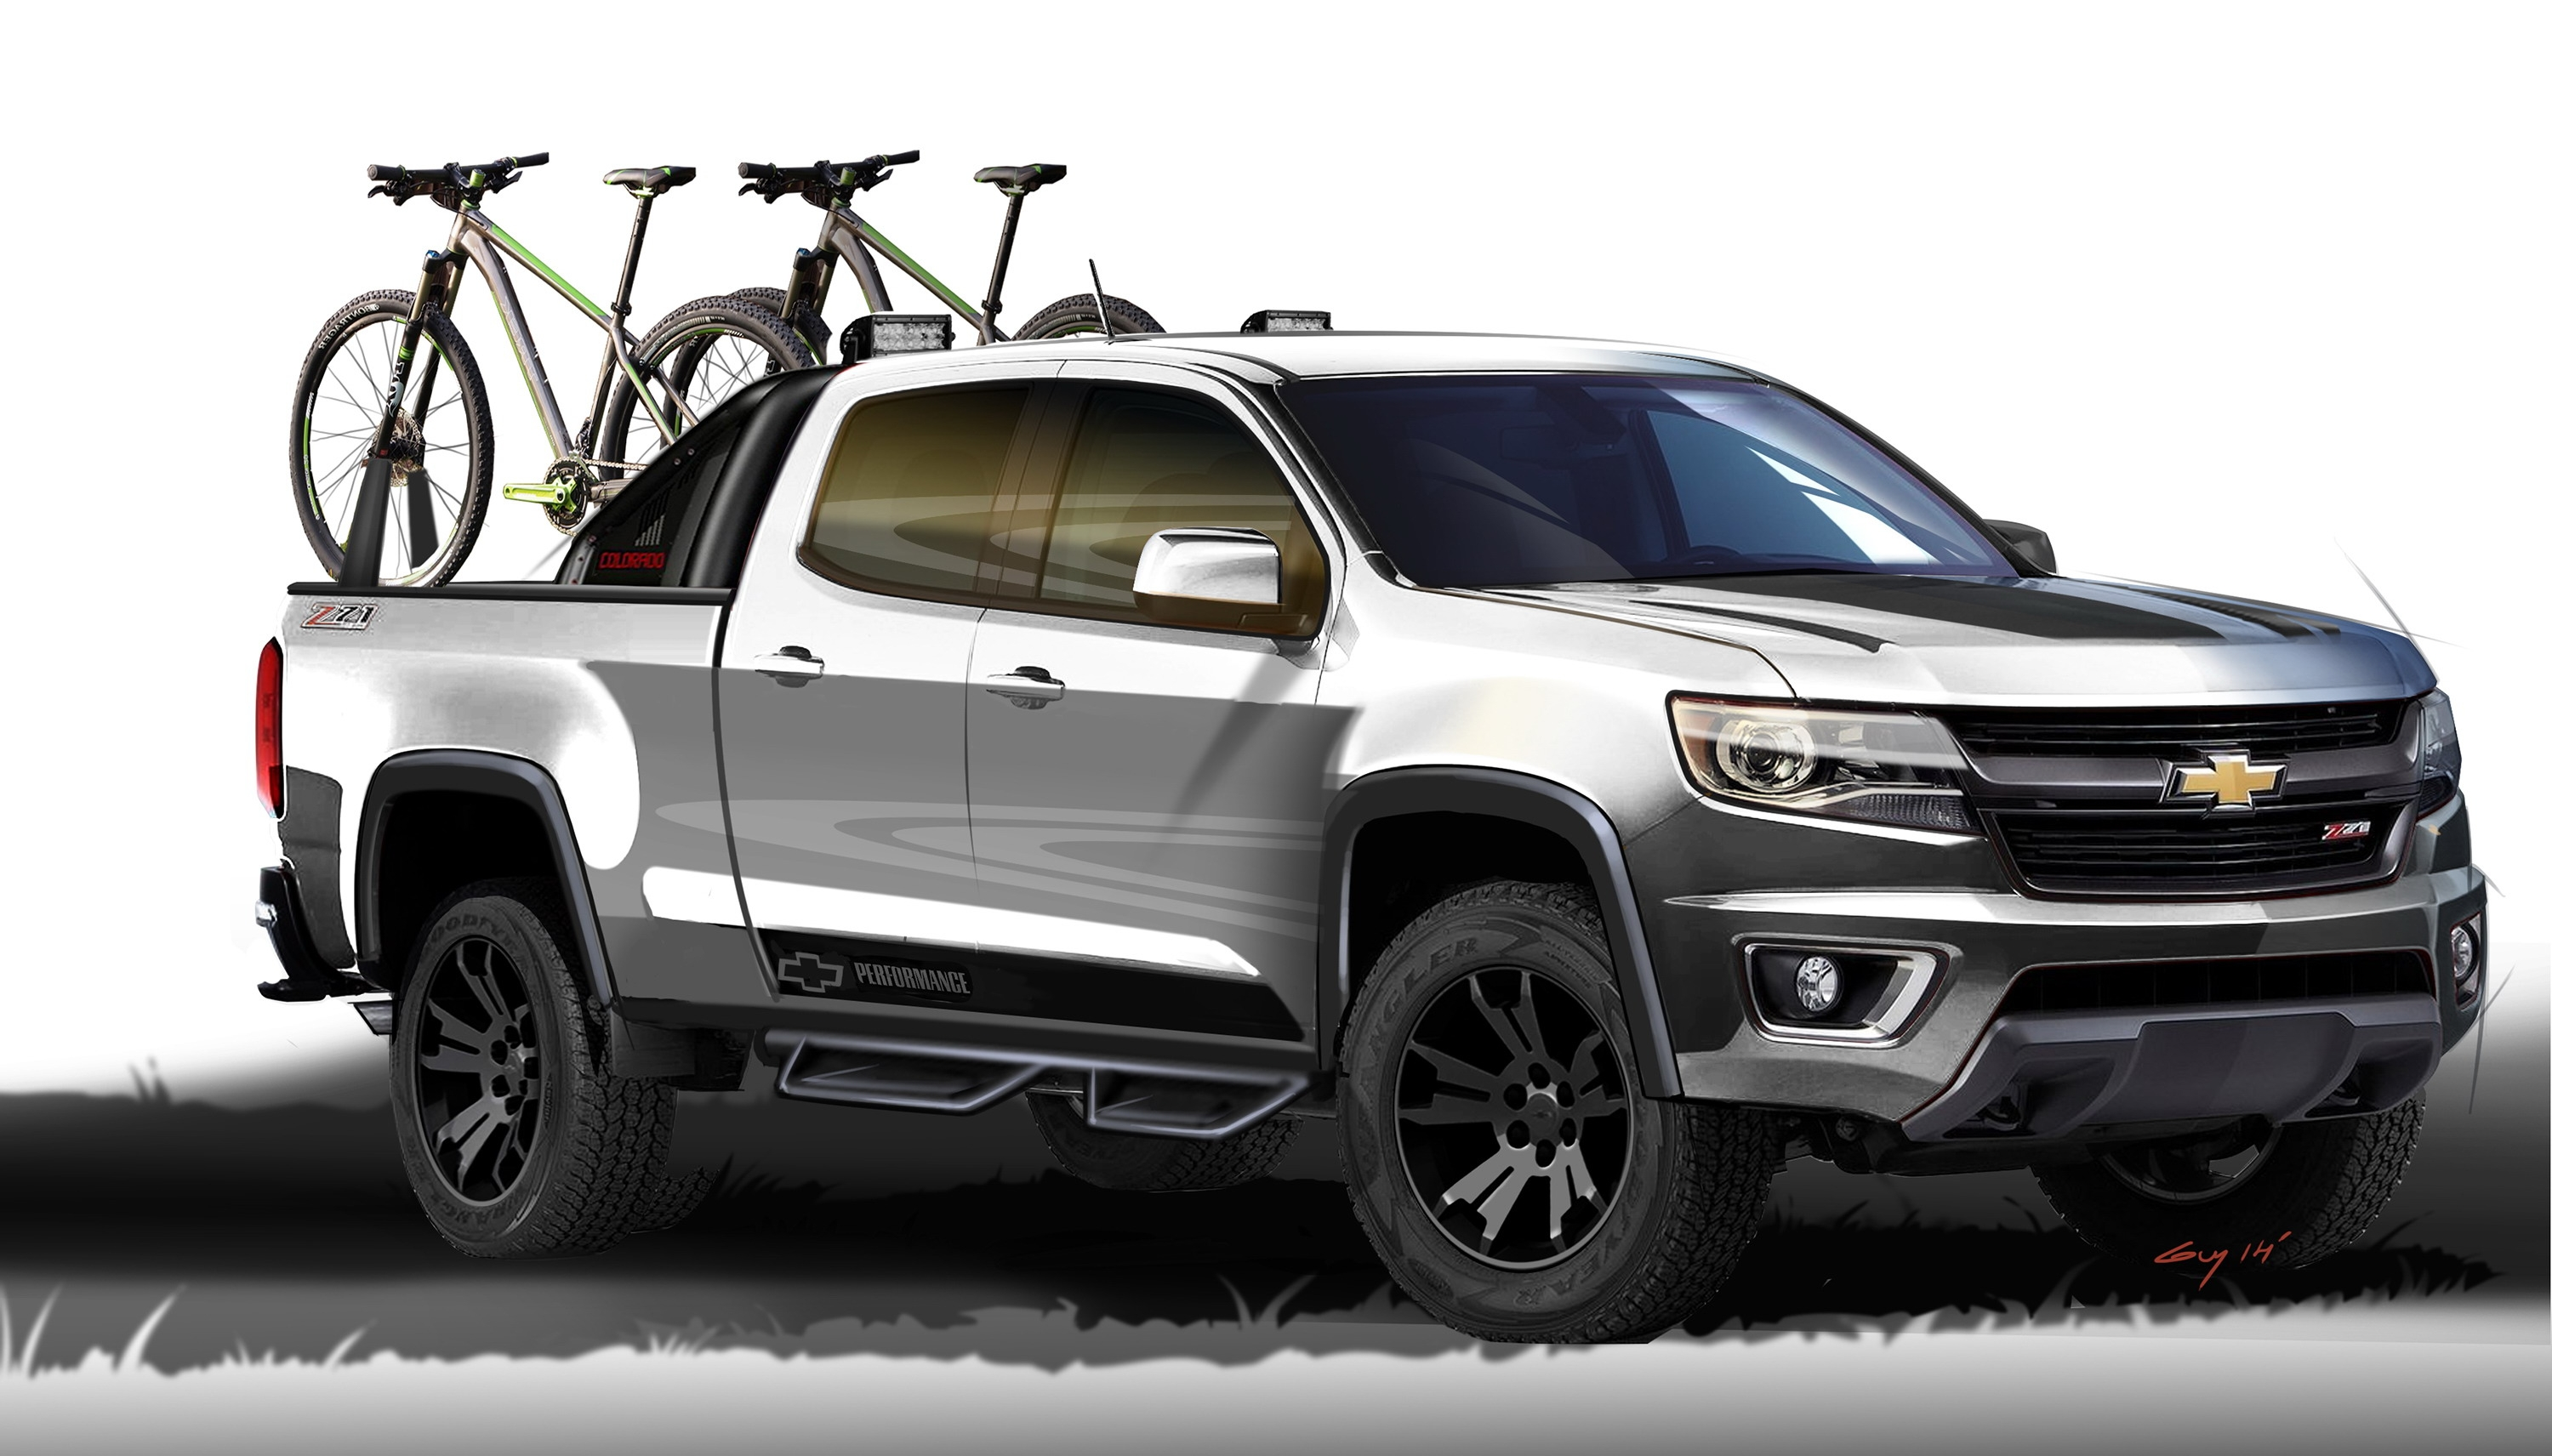 2015 chevrolet colorado sport concept review top speed. Black Bedroom Furniture Sets. Home Design Ideas